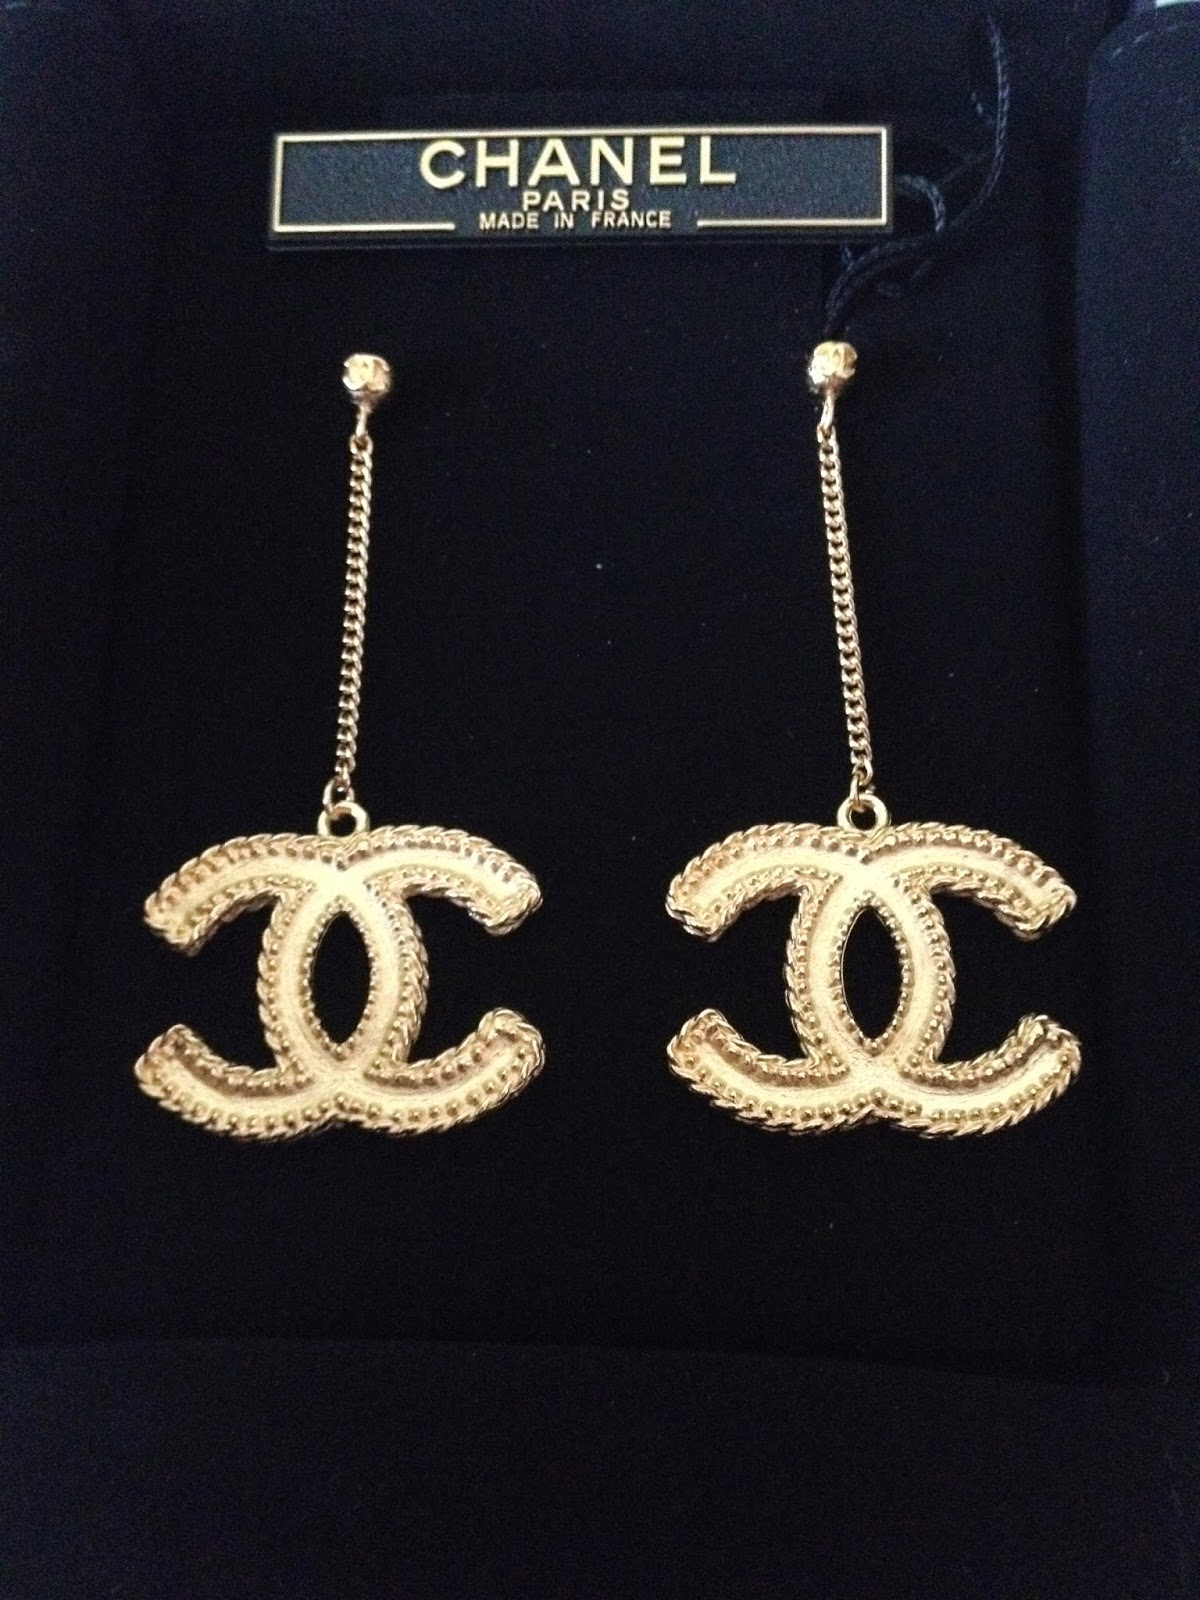 Chanel Fashion Jewelry Earrings Chanel Earrings LARGE CC LOGO